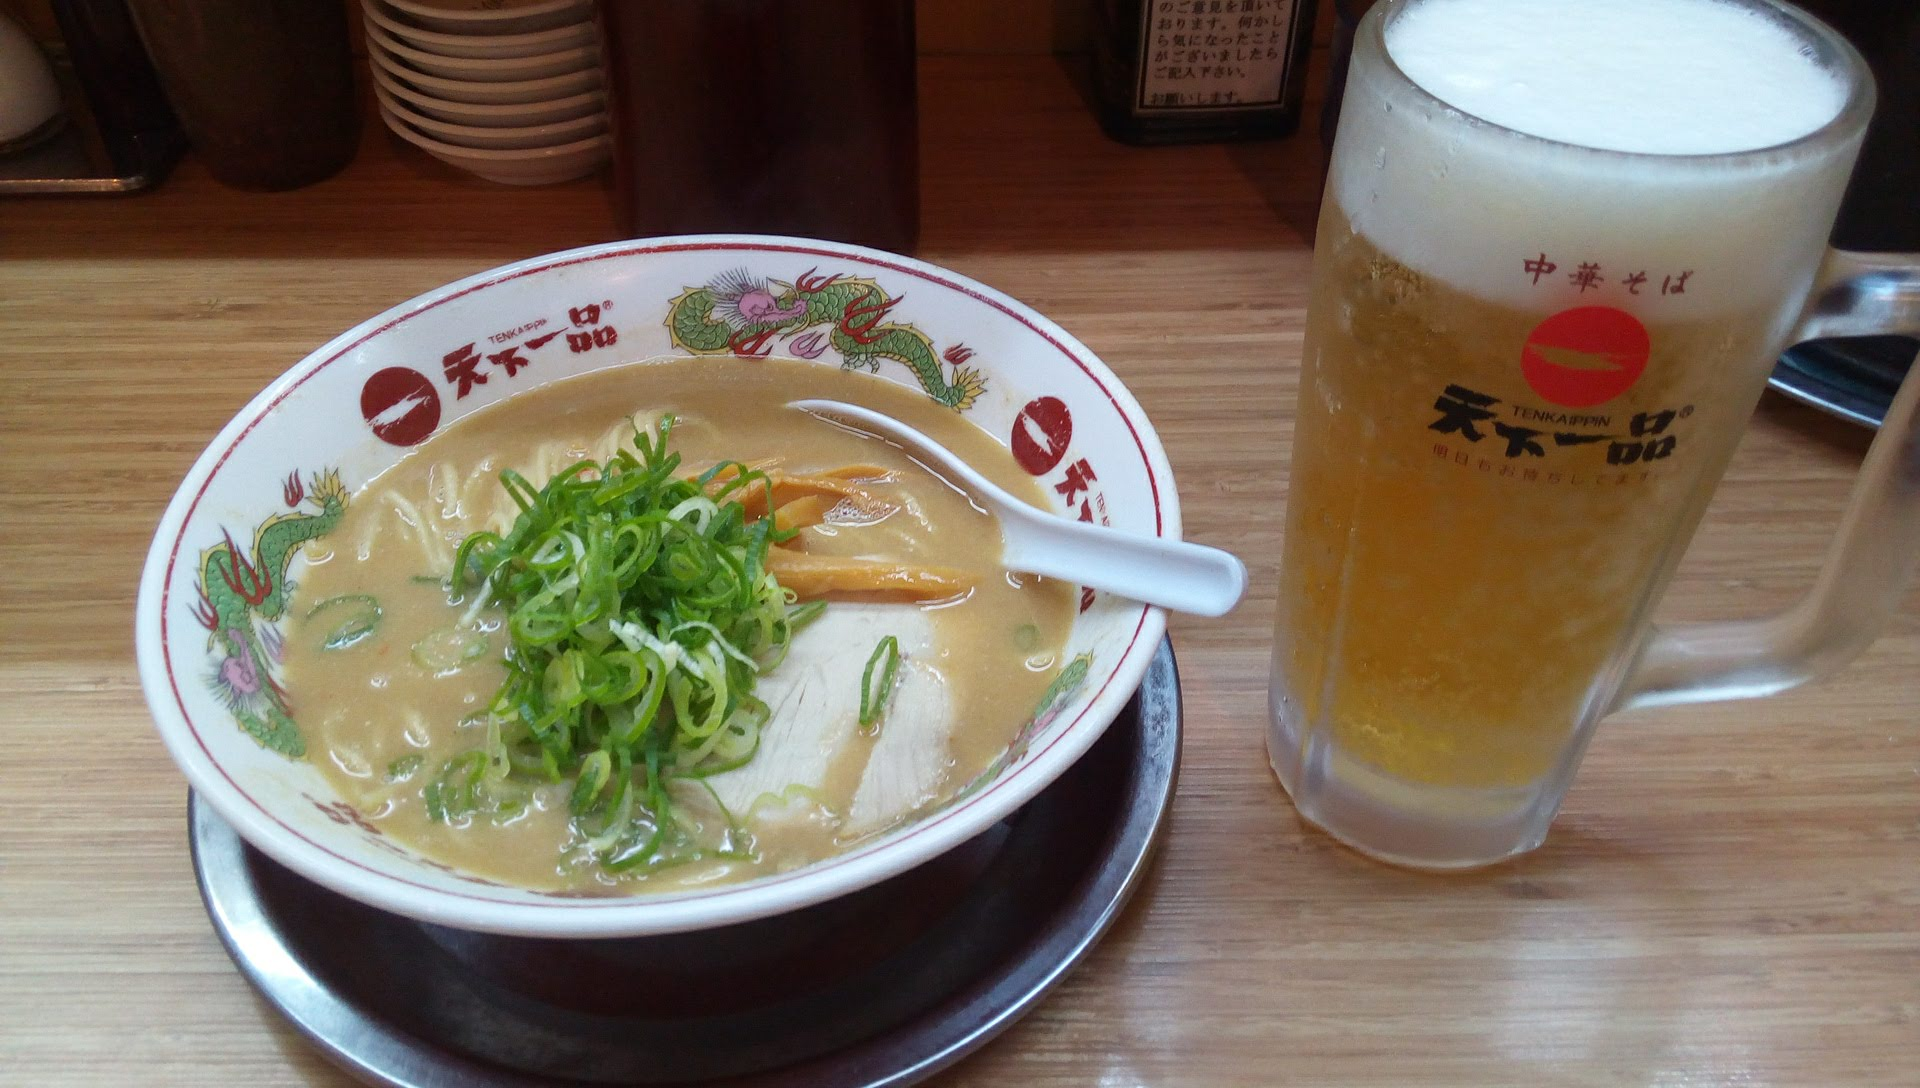 Draft beer and heavy rich ramen